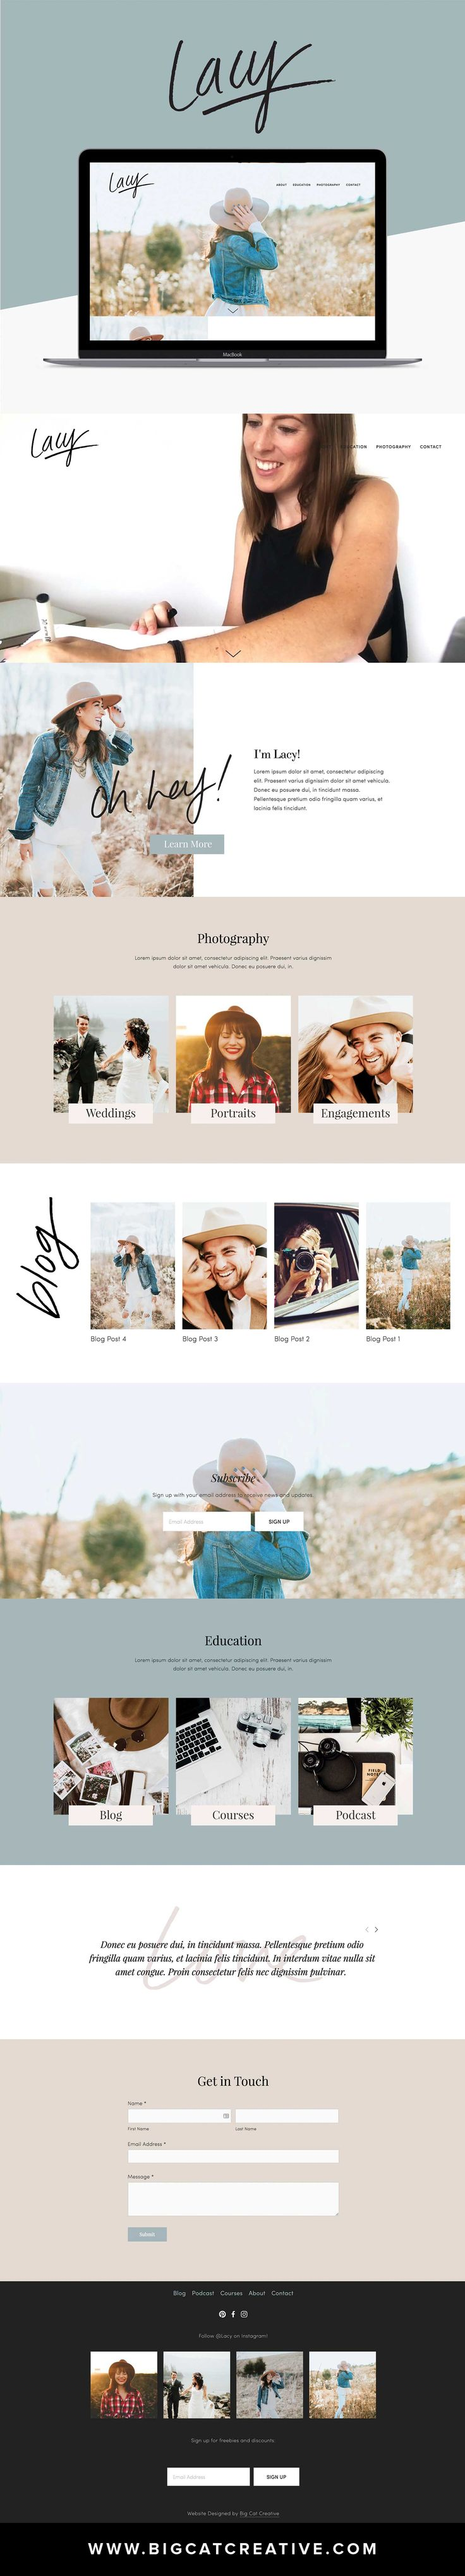 Lacy Squarespace Template available NOW - by Big Cat Creative | Squarespace Template | Squarespace Design | Squarespace Portfolio | Squarespace for photographers | Squarespace Website Inspiration | Squarespace Website Design Inspiration | Unique Website Design | Artistic Website Design | Creative Website Design | Web Design for Creative Entrepreneurs | Web Design for Photographers | Web Design for Interior Designers | Website design for Artists | Website Layout Design | Website Layout…